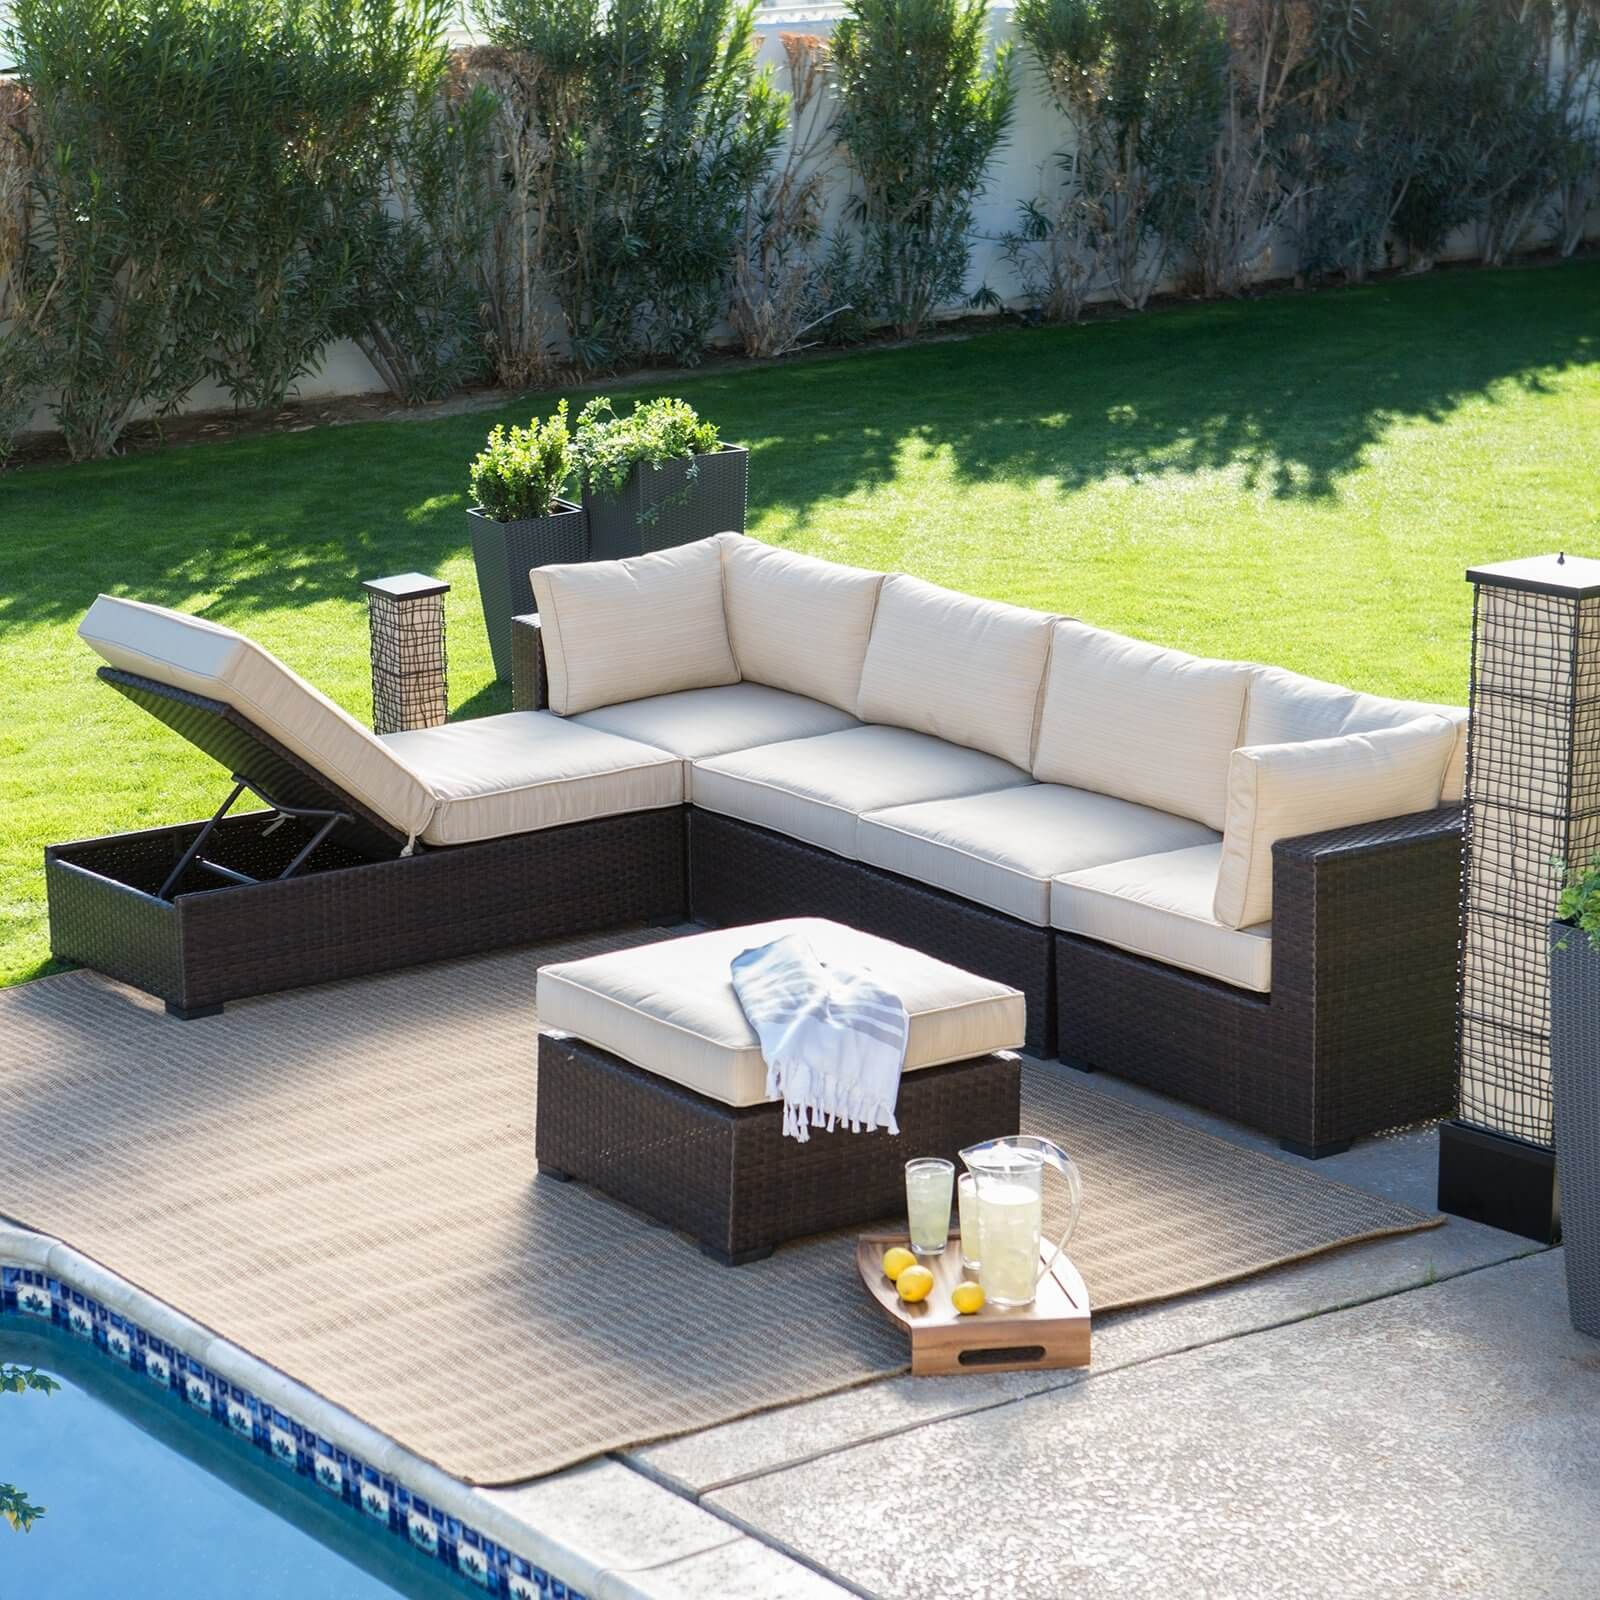 25 Awesome Modern Brown All Weather Outdoor Patio Sectionals Diy